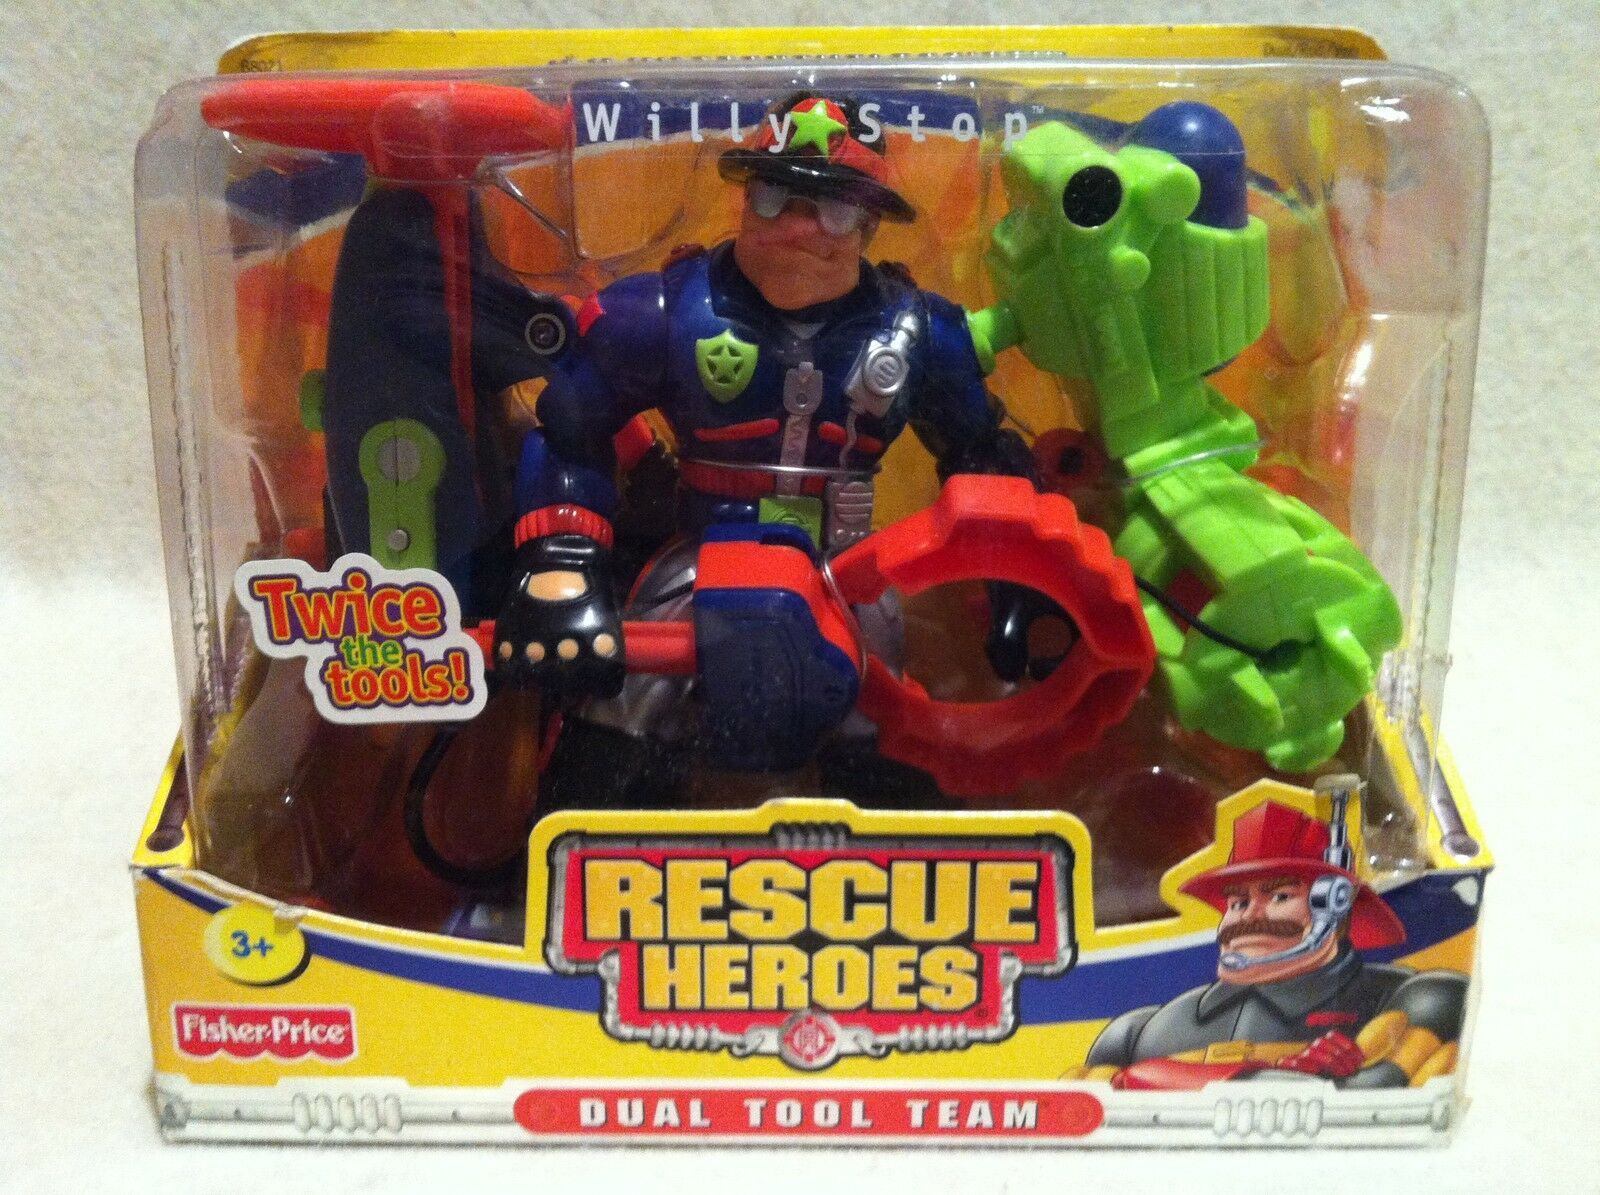 RescueHeroes  Dual Tool Team Willy Stop Police Officer Factory Factory Factory Sealed  a68528